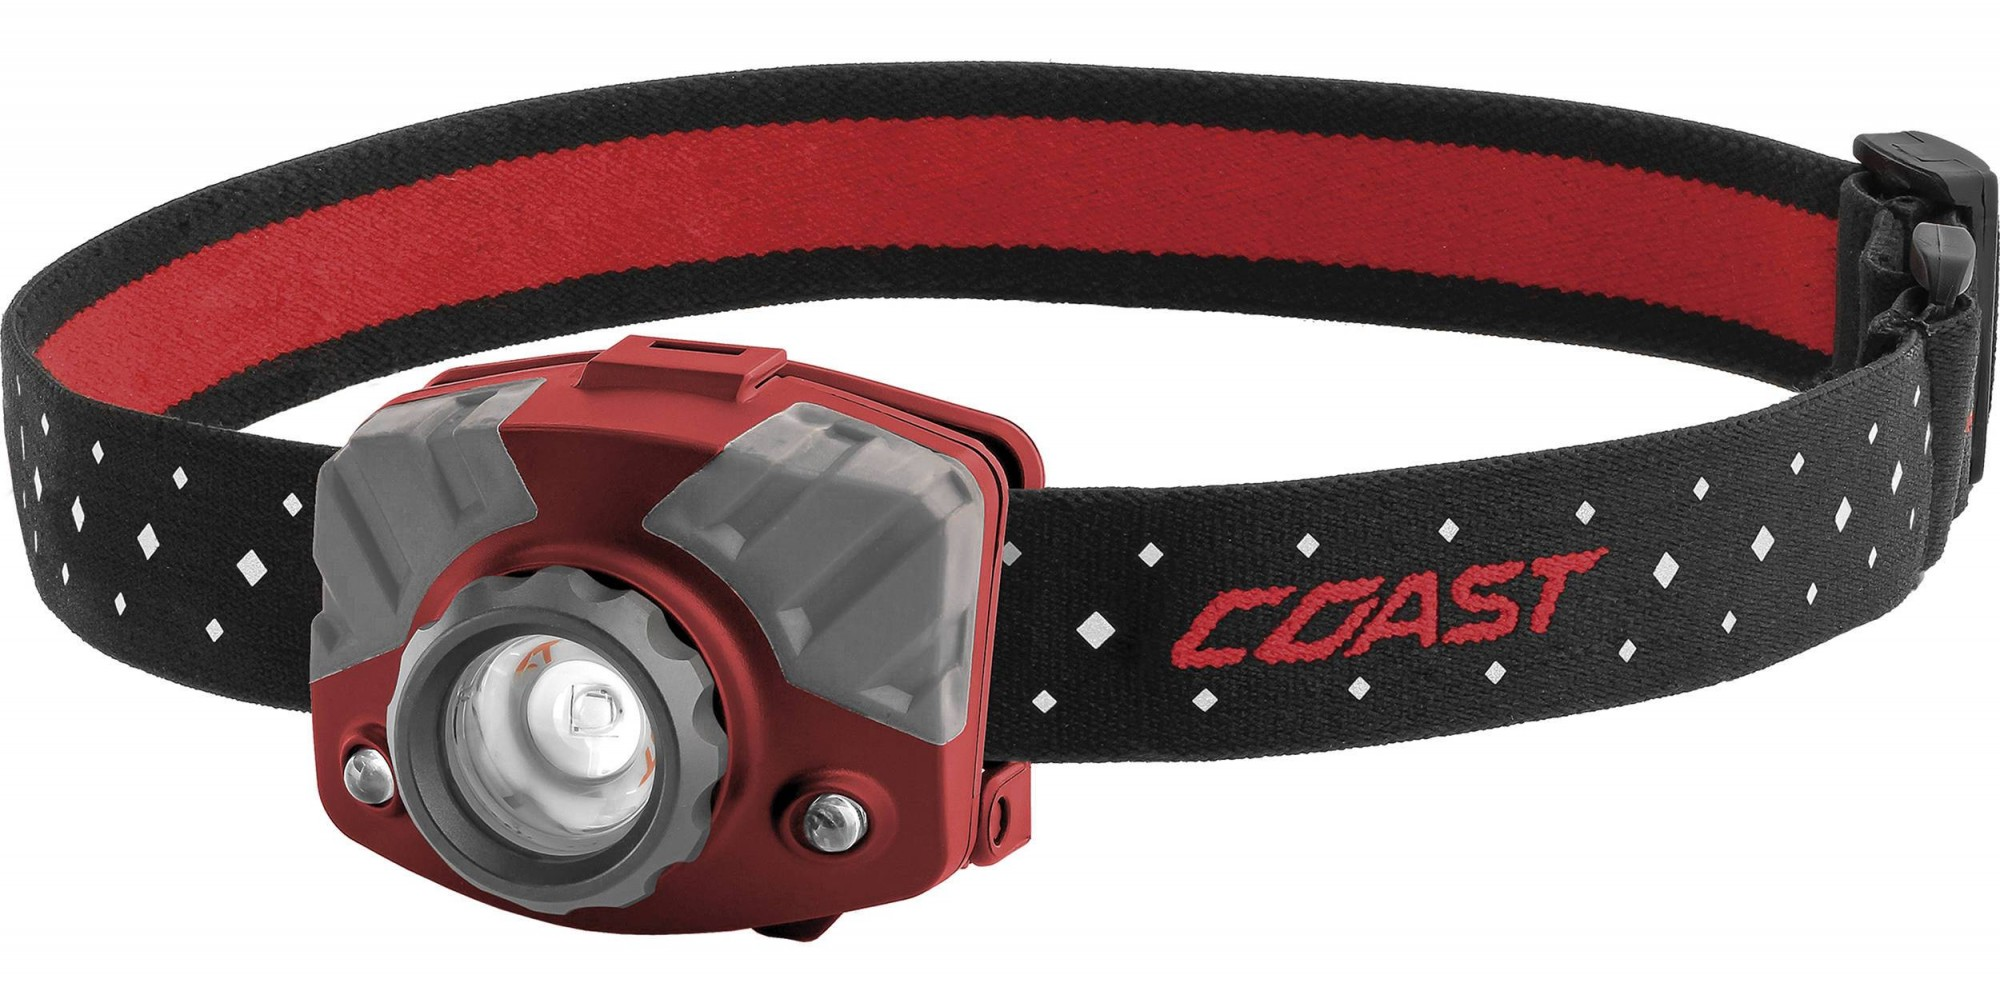 Coast FL75R Rechargeable Pure Beam Focus Headlamp - 20618, Red